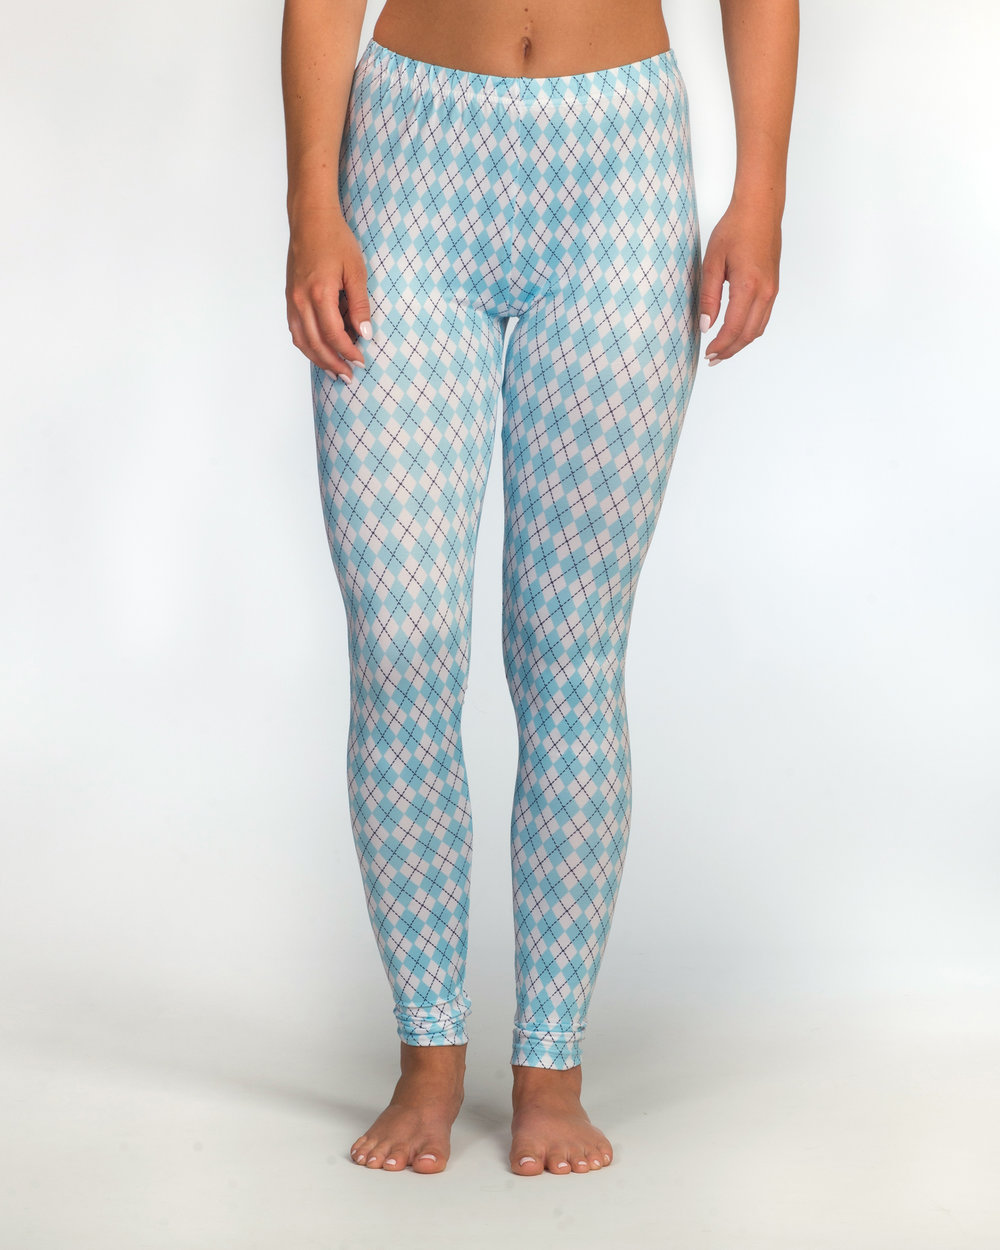 "Madisonis 5' 6"" tall, has 31"" hips, and is rockin' a size S in Gameday Leggings UNC Argyle."